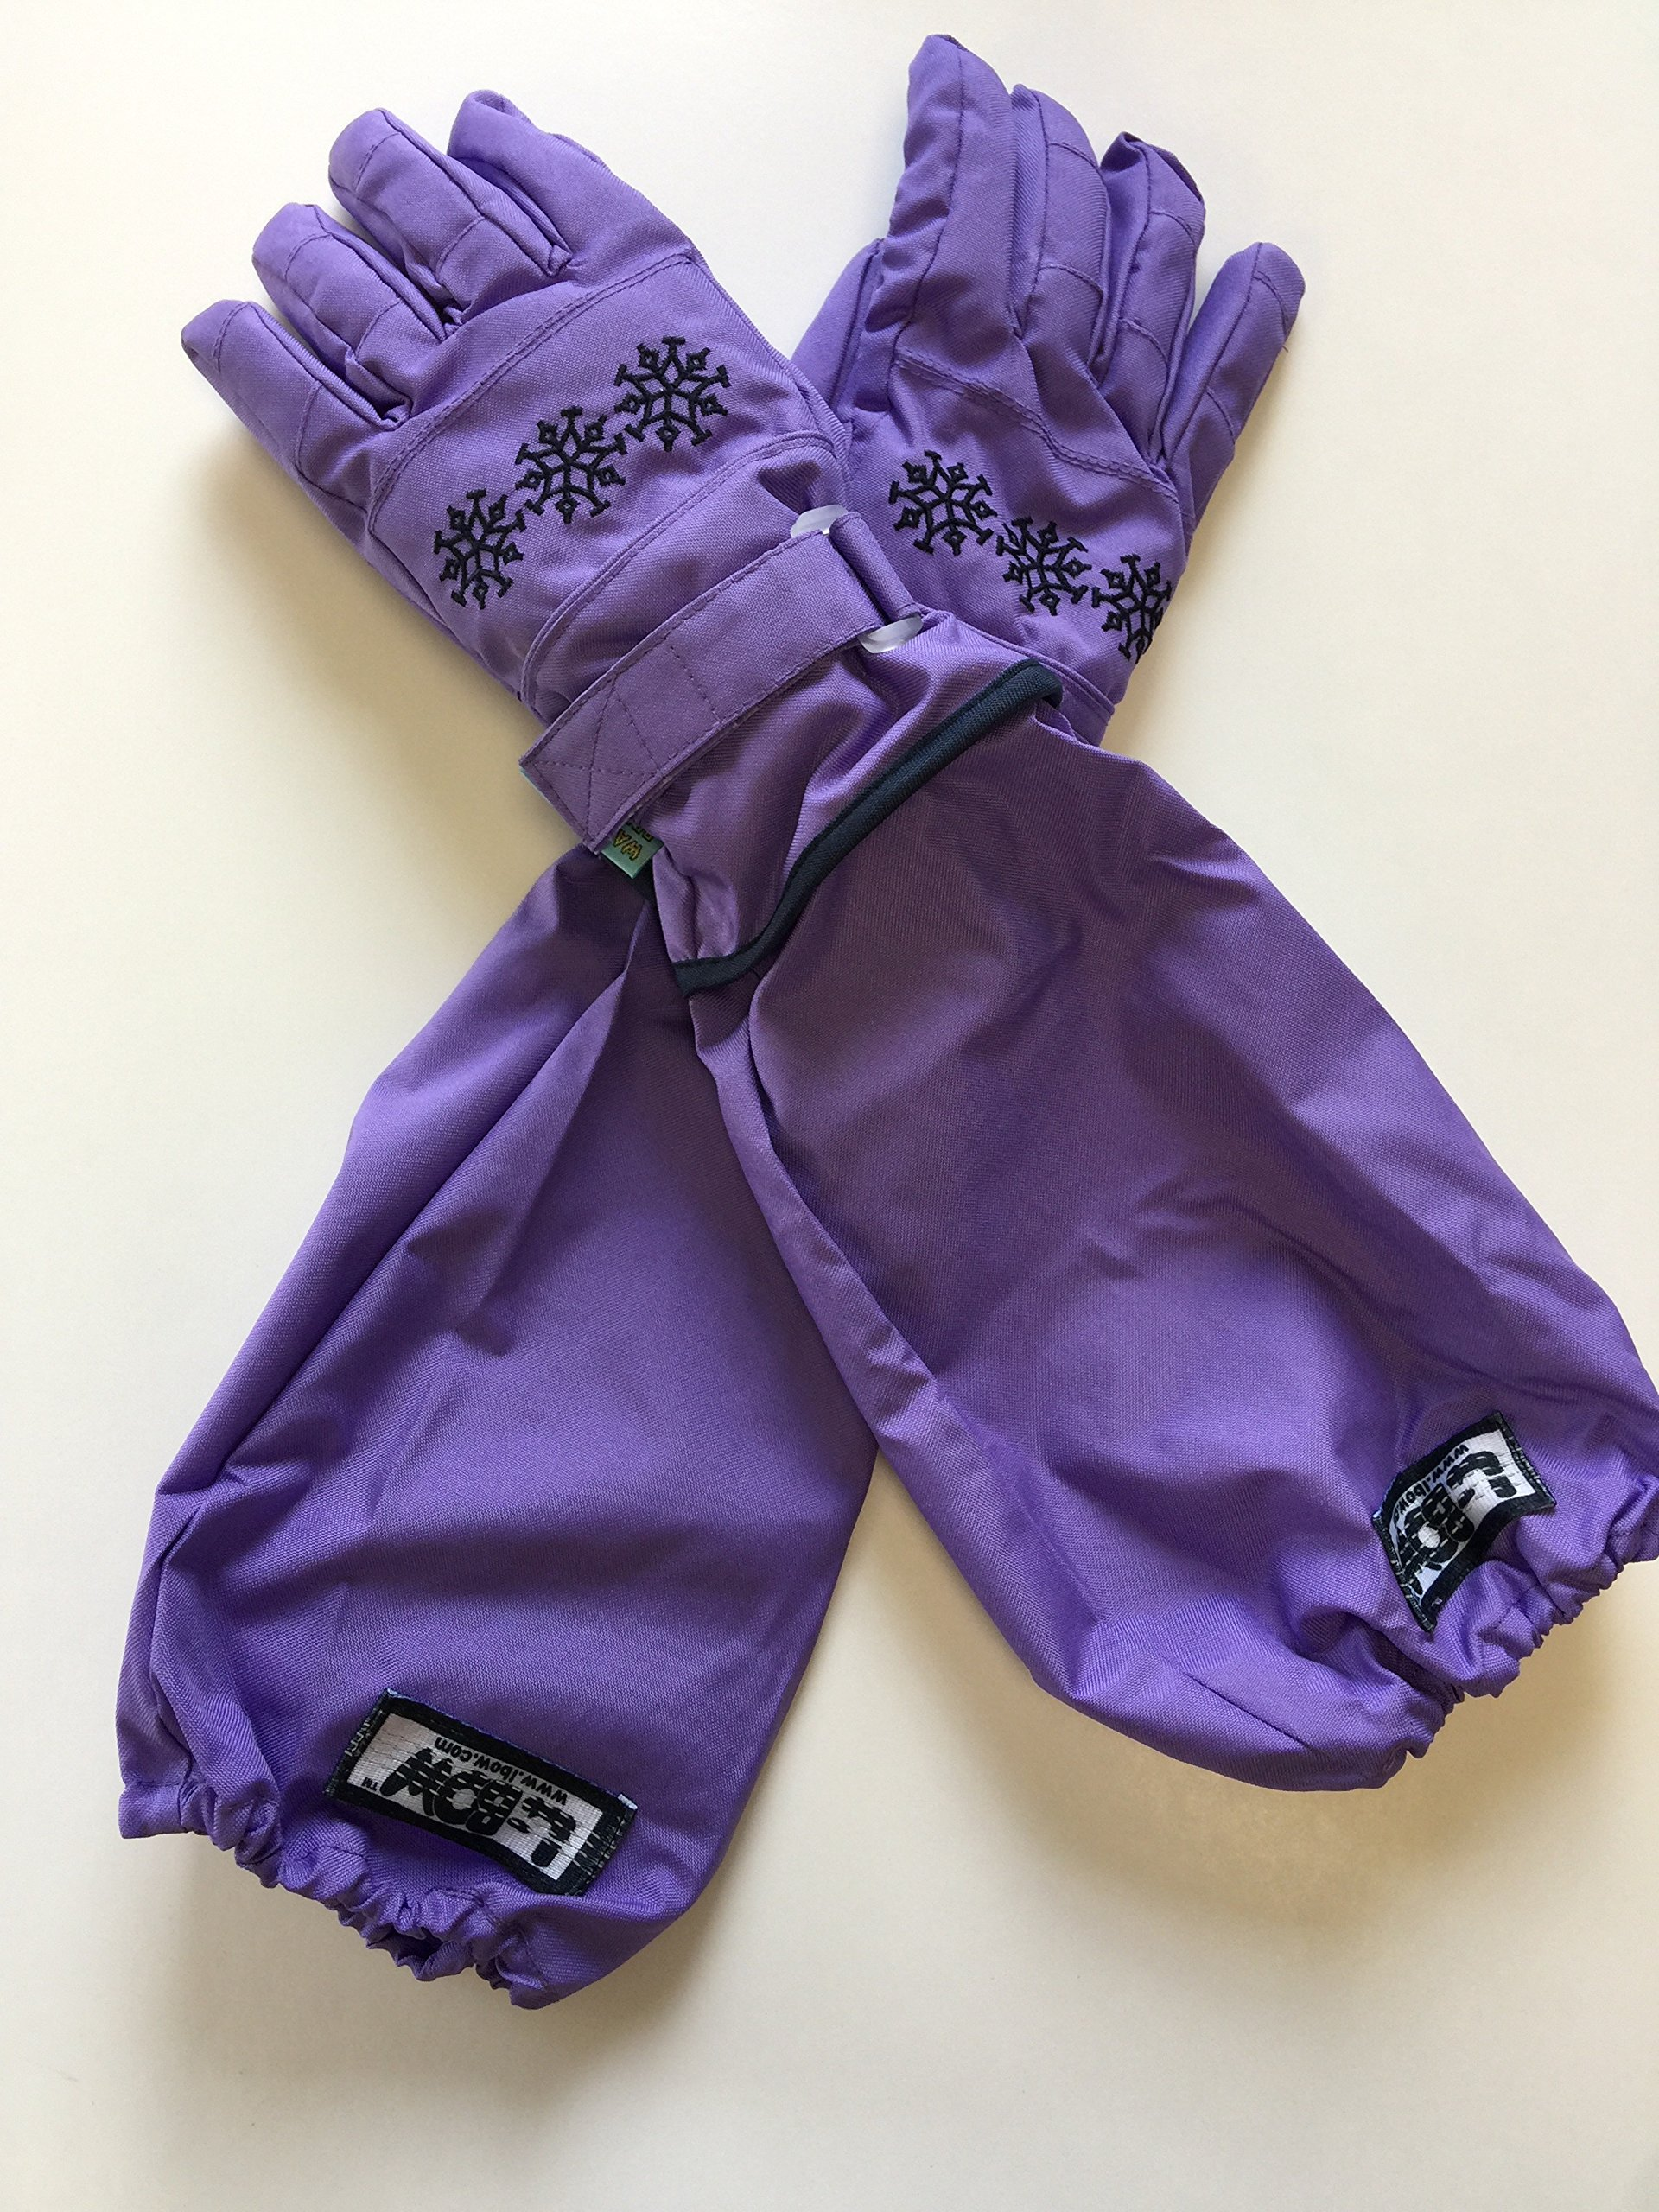 L-Bow Boy's Breathable Waterproof 3M Thinsulate Glove (X-Large 9 1/2-14 1/2, Purple)